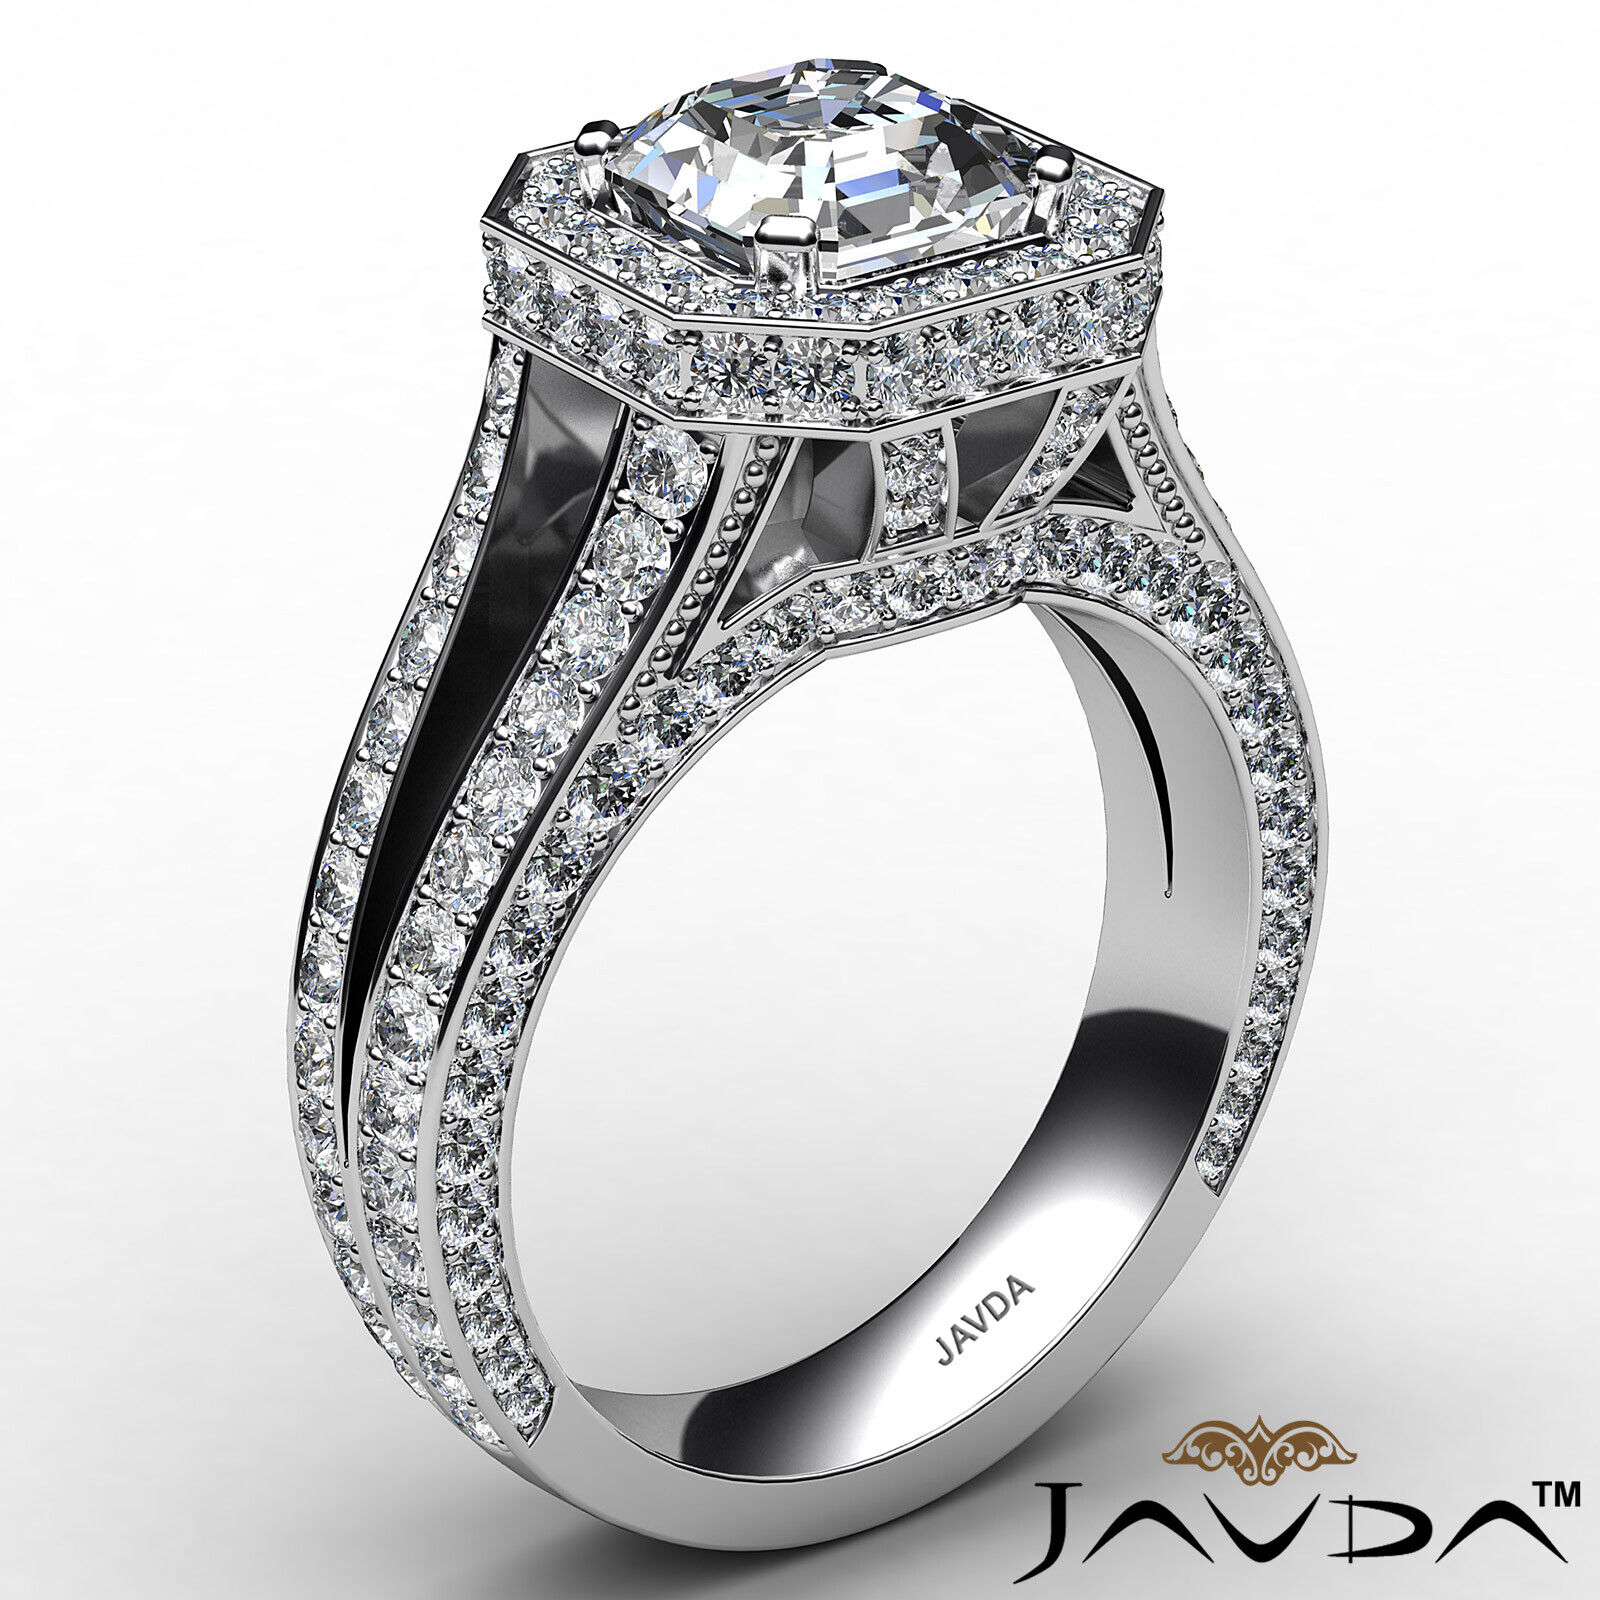 Halo Asscher Diamond Engagement Ring GIA Certified G Color & SI2 clarity 2.4 ctw 3